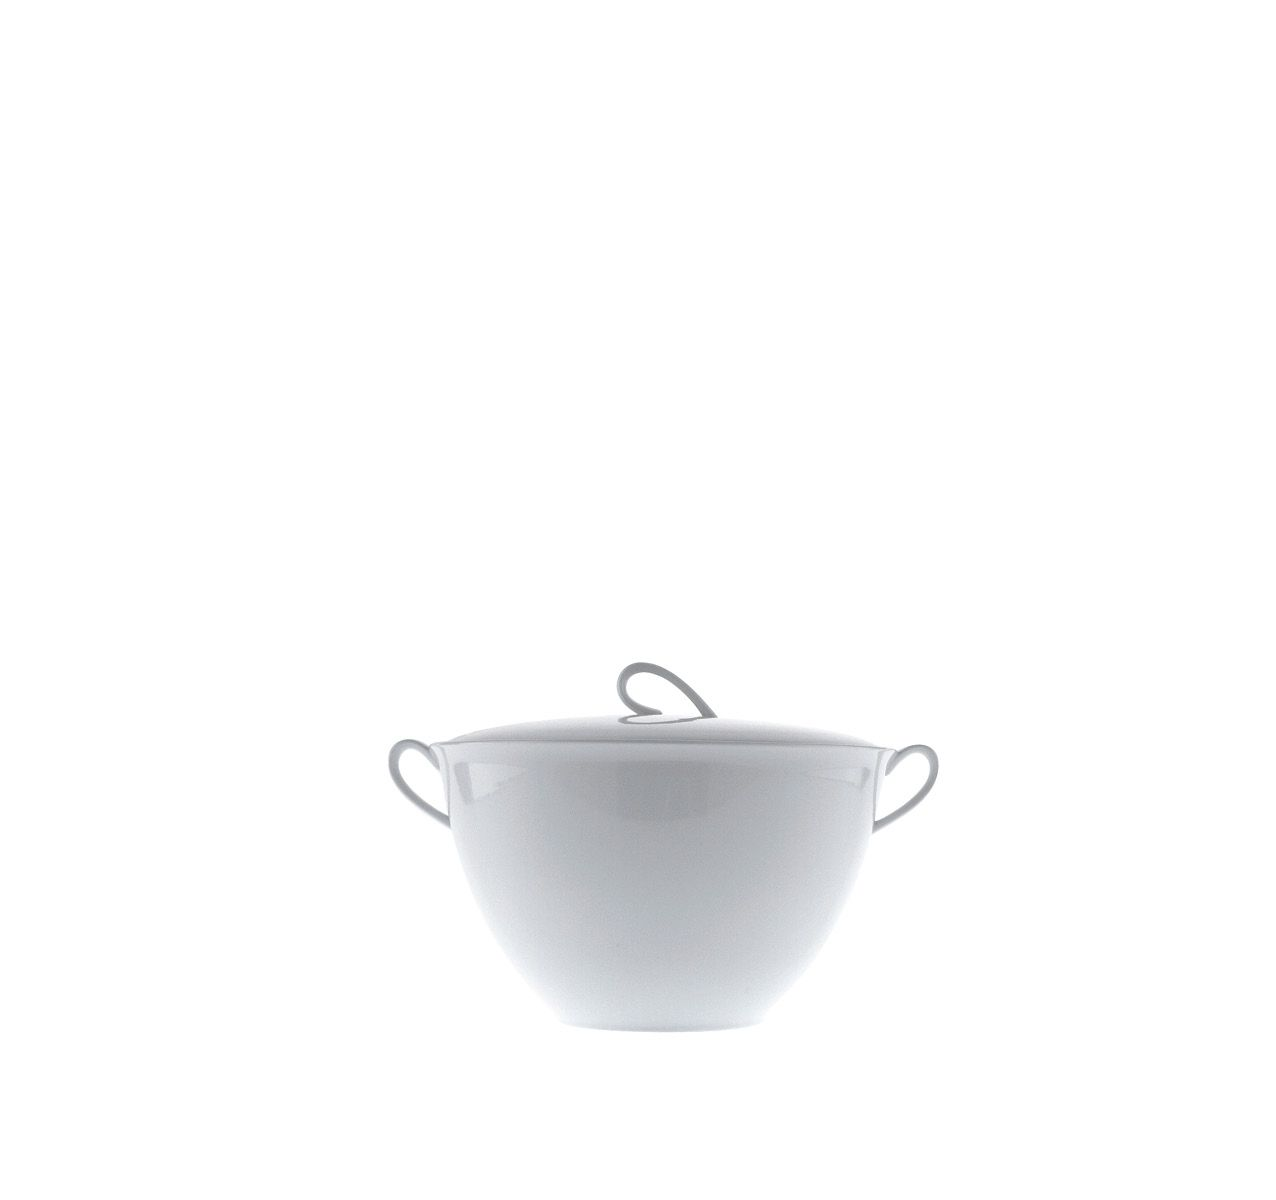 The White Snow - Soup Tureen with Lid White